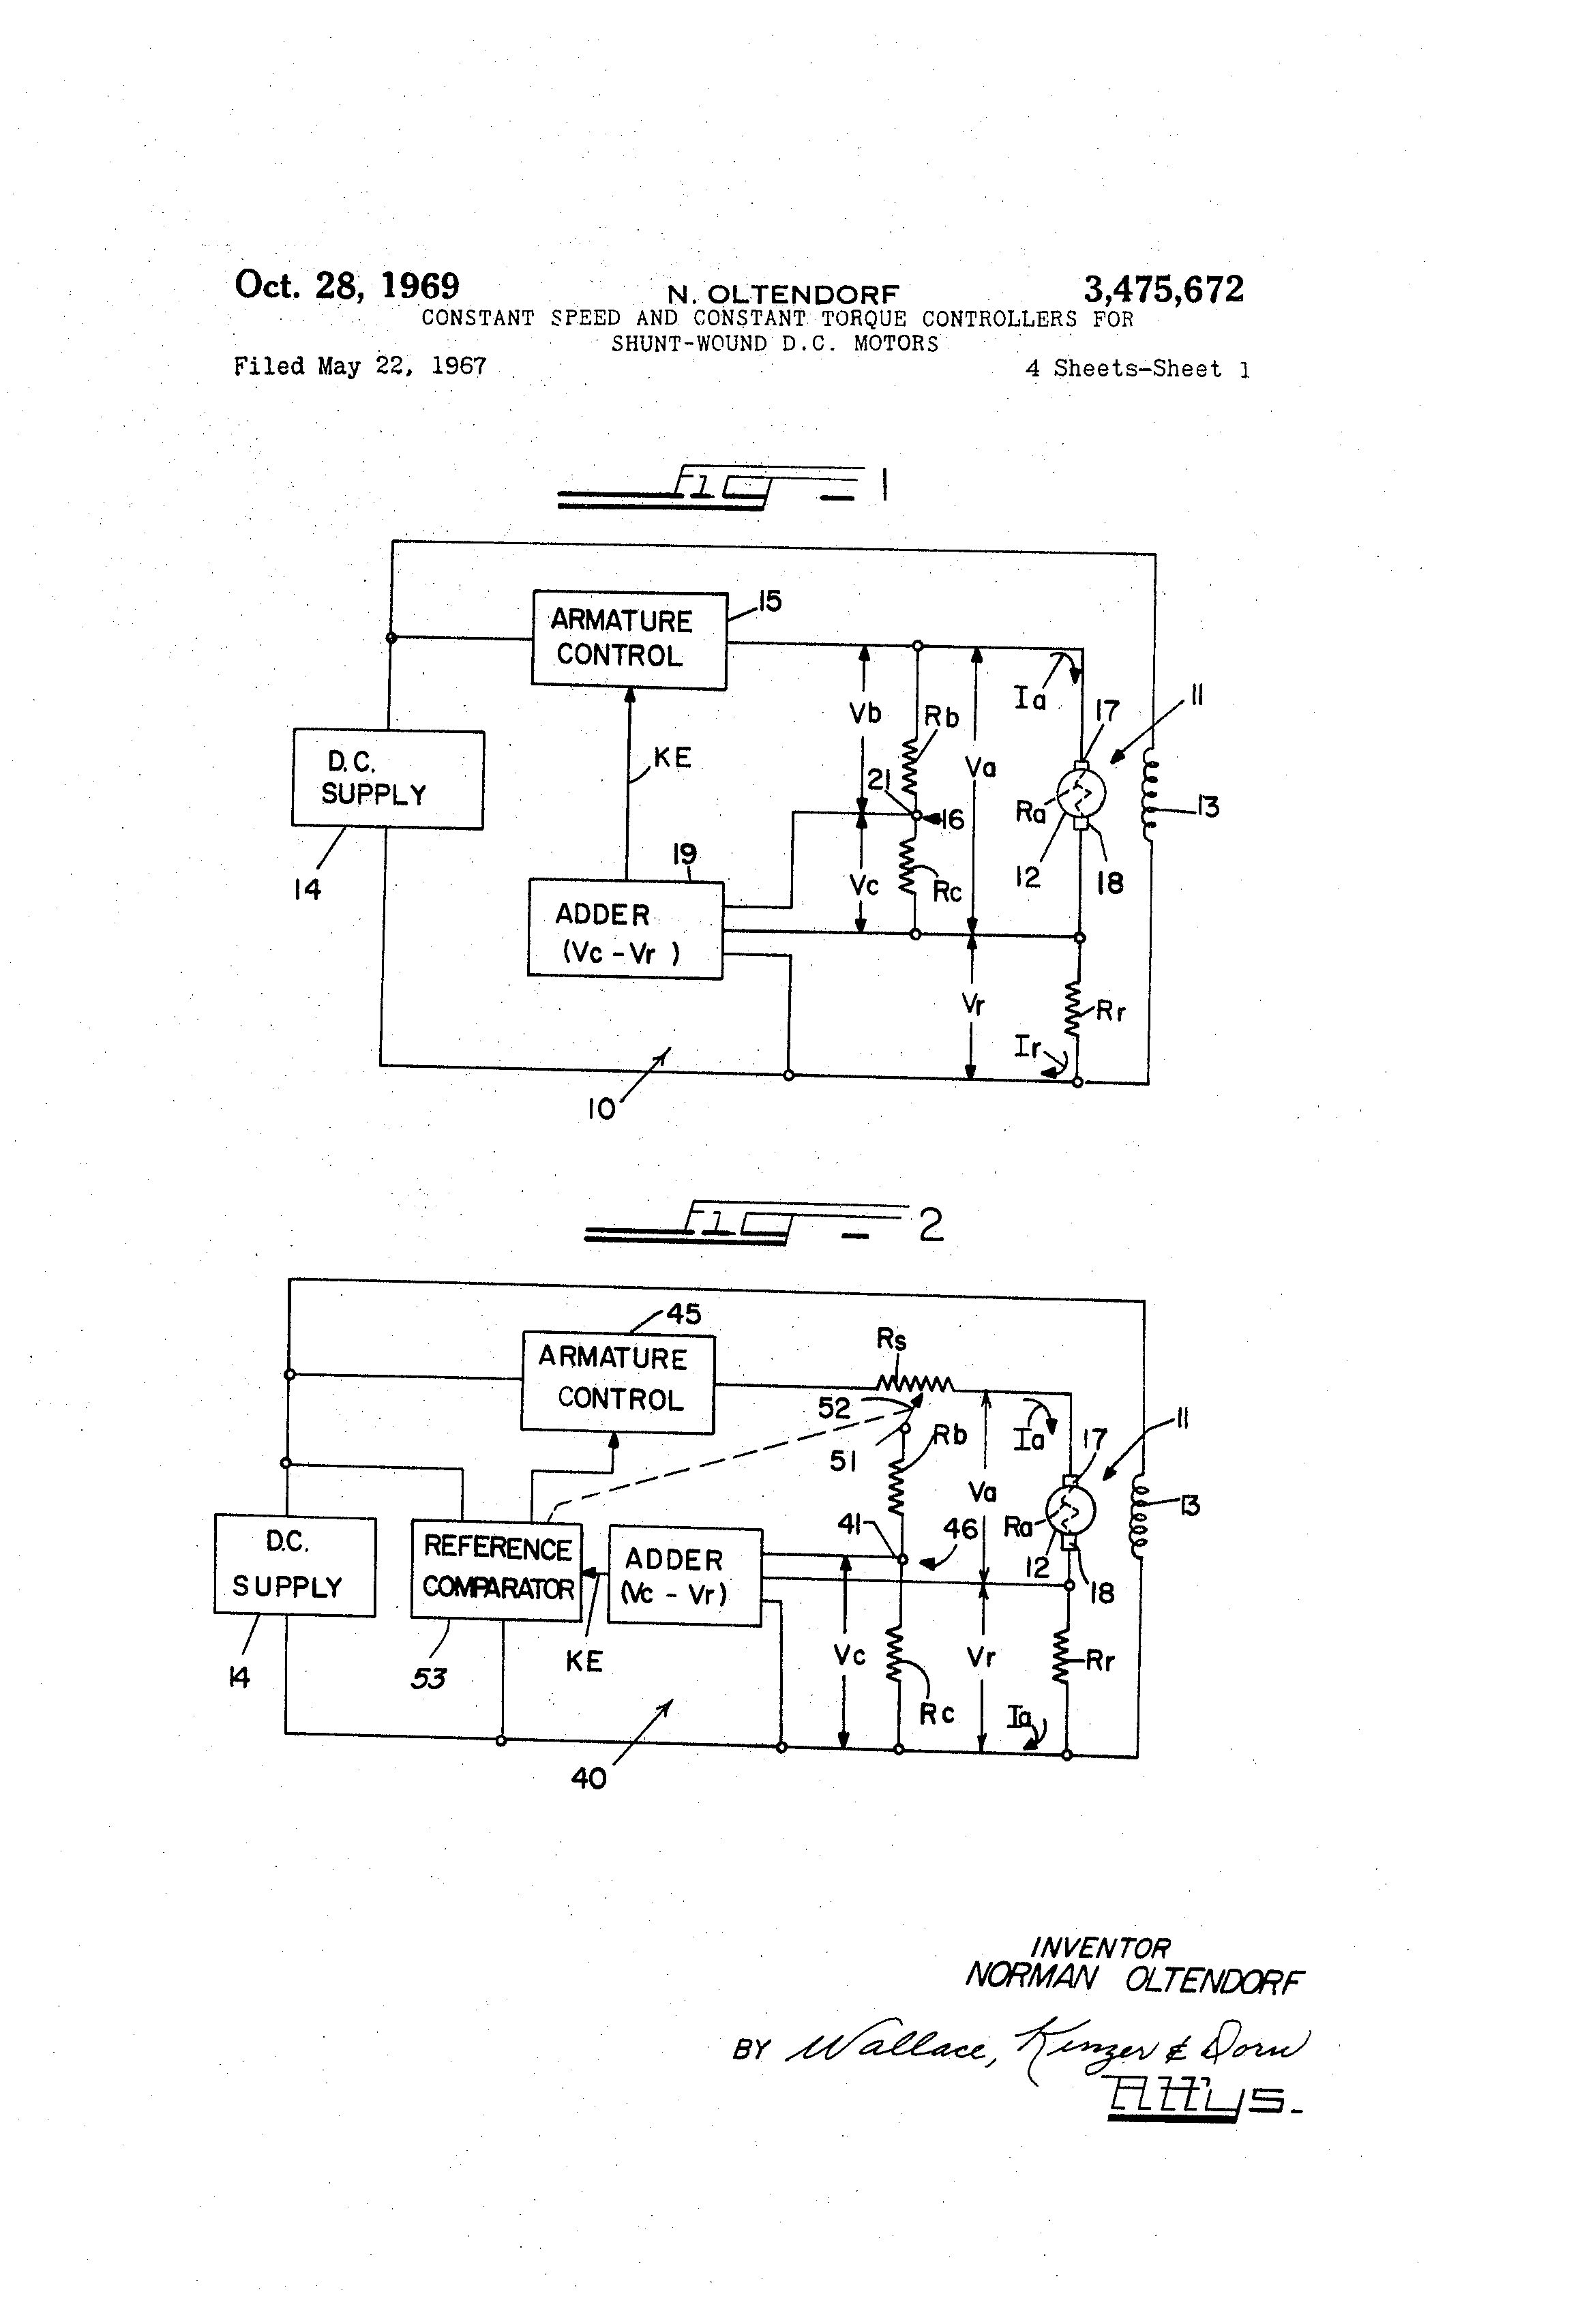 US3475672 0 patent us3475672 constant speed and constant torque controllers shunt wound dc motor wiring diagram at bakdesigns.co